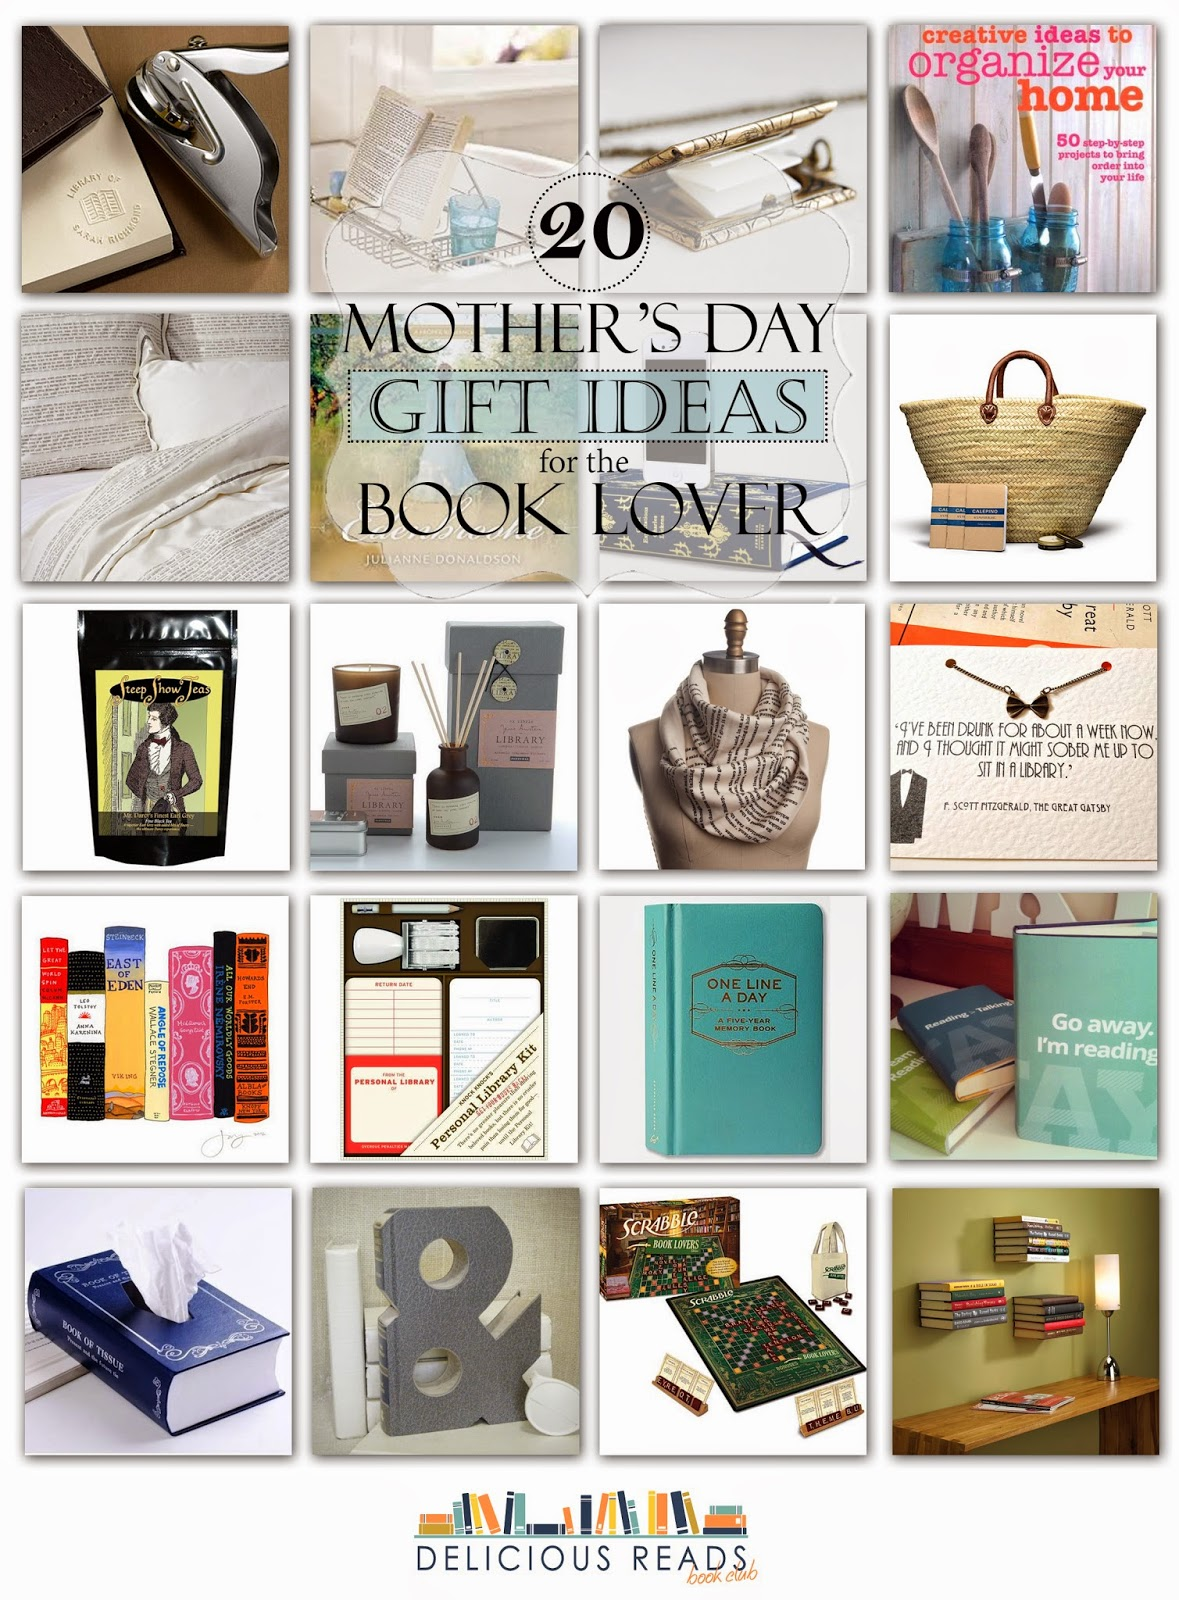 delicious reads: 20 mother's day gift ideas for the book lover